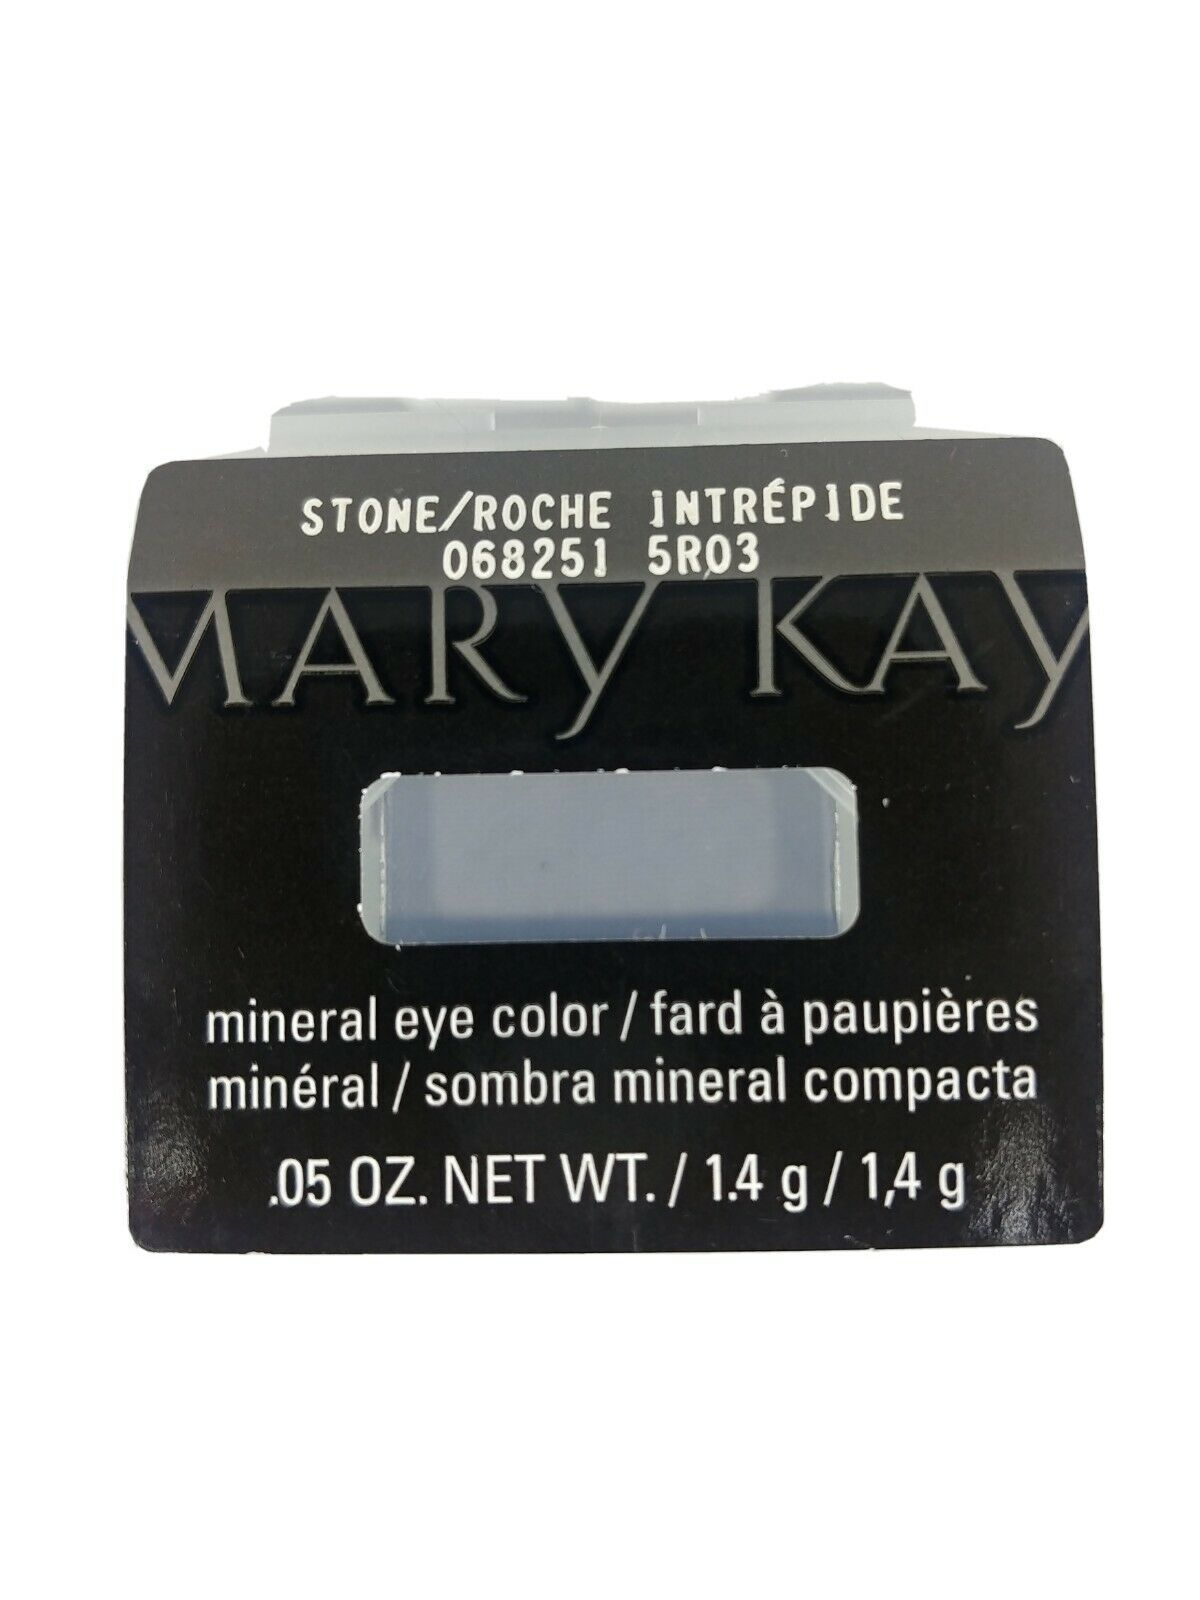 Mary Kay Stone Mineral Single Eye Shadow Discontinued - $6.79